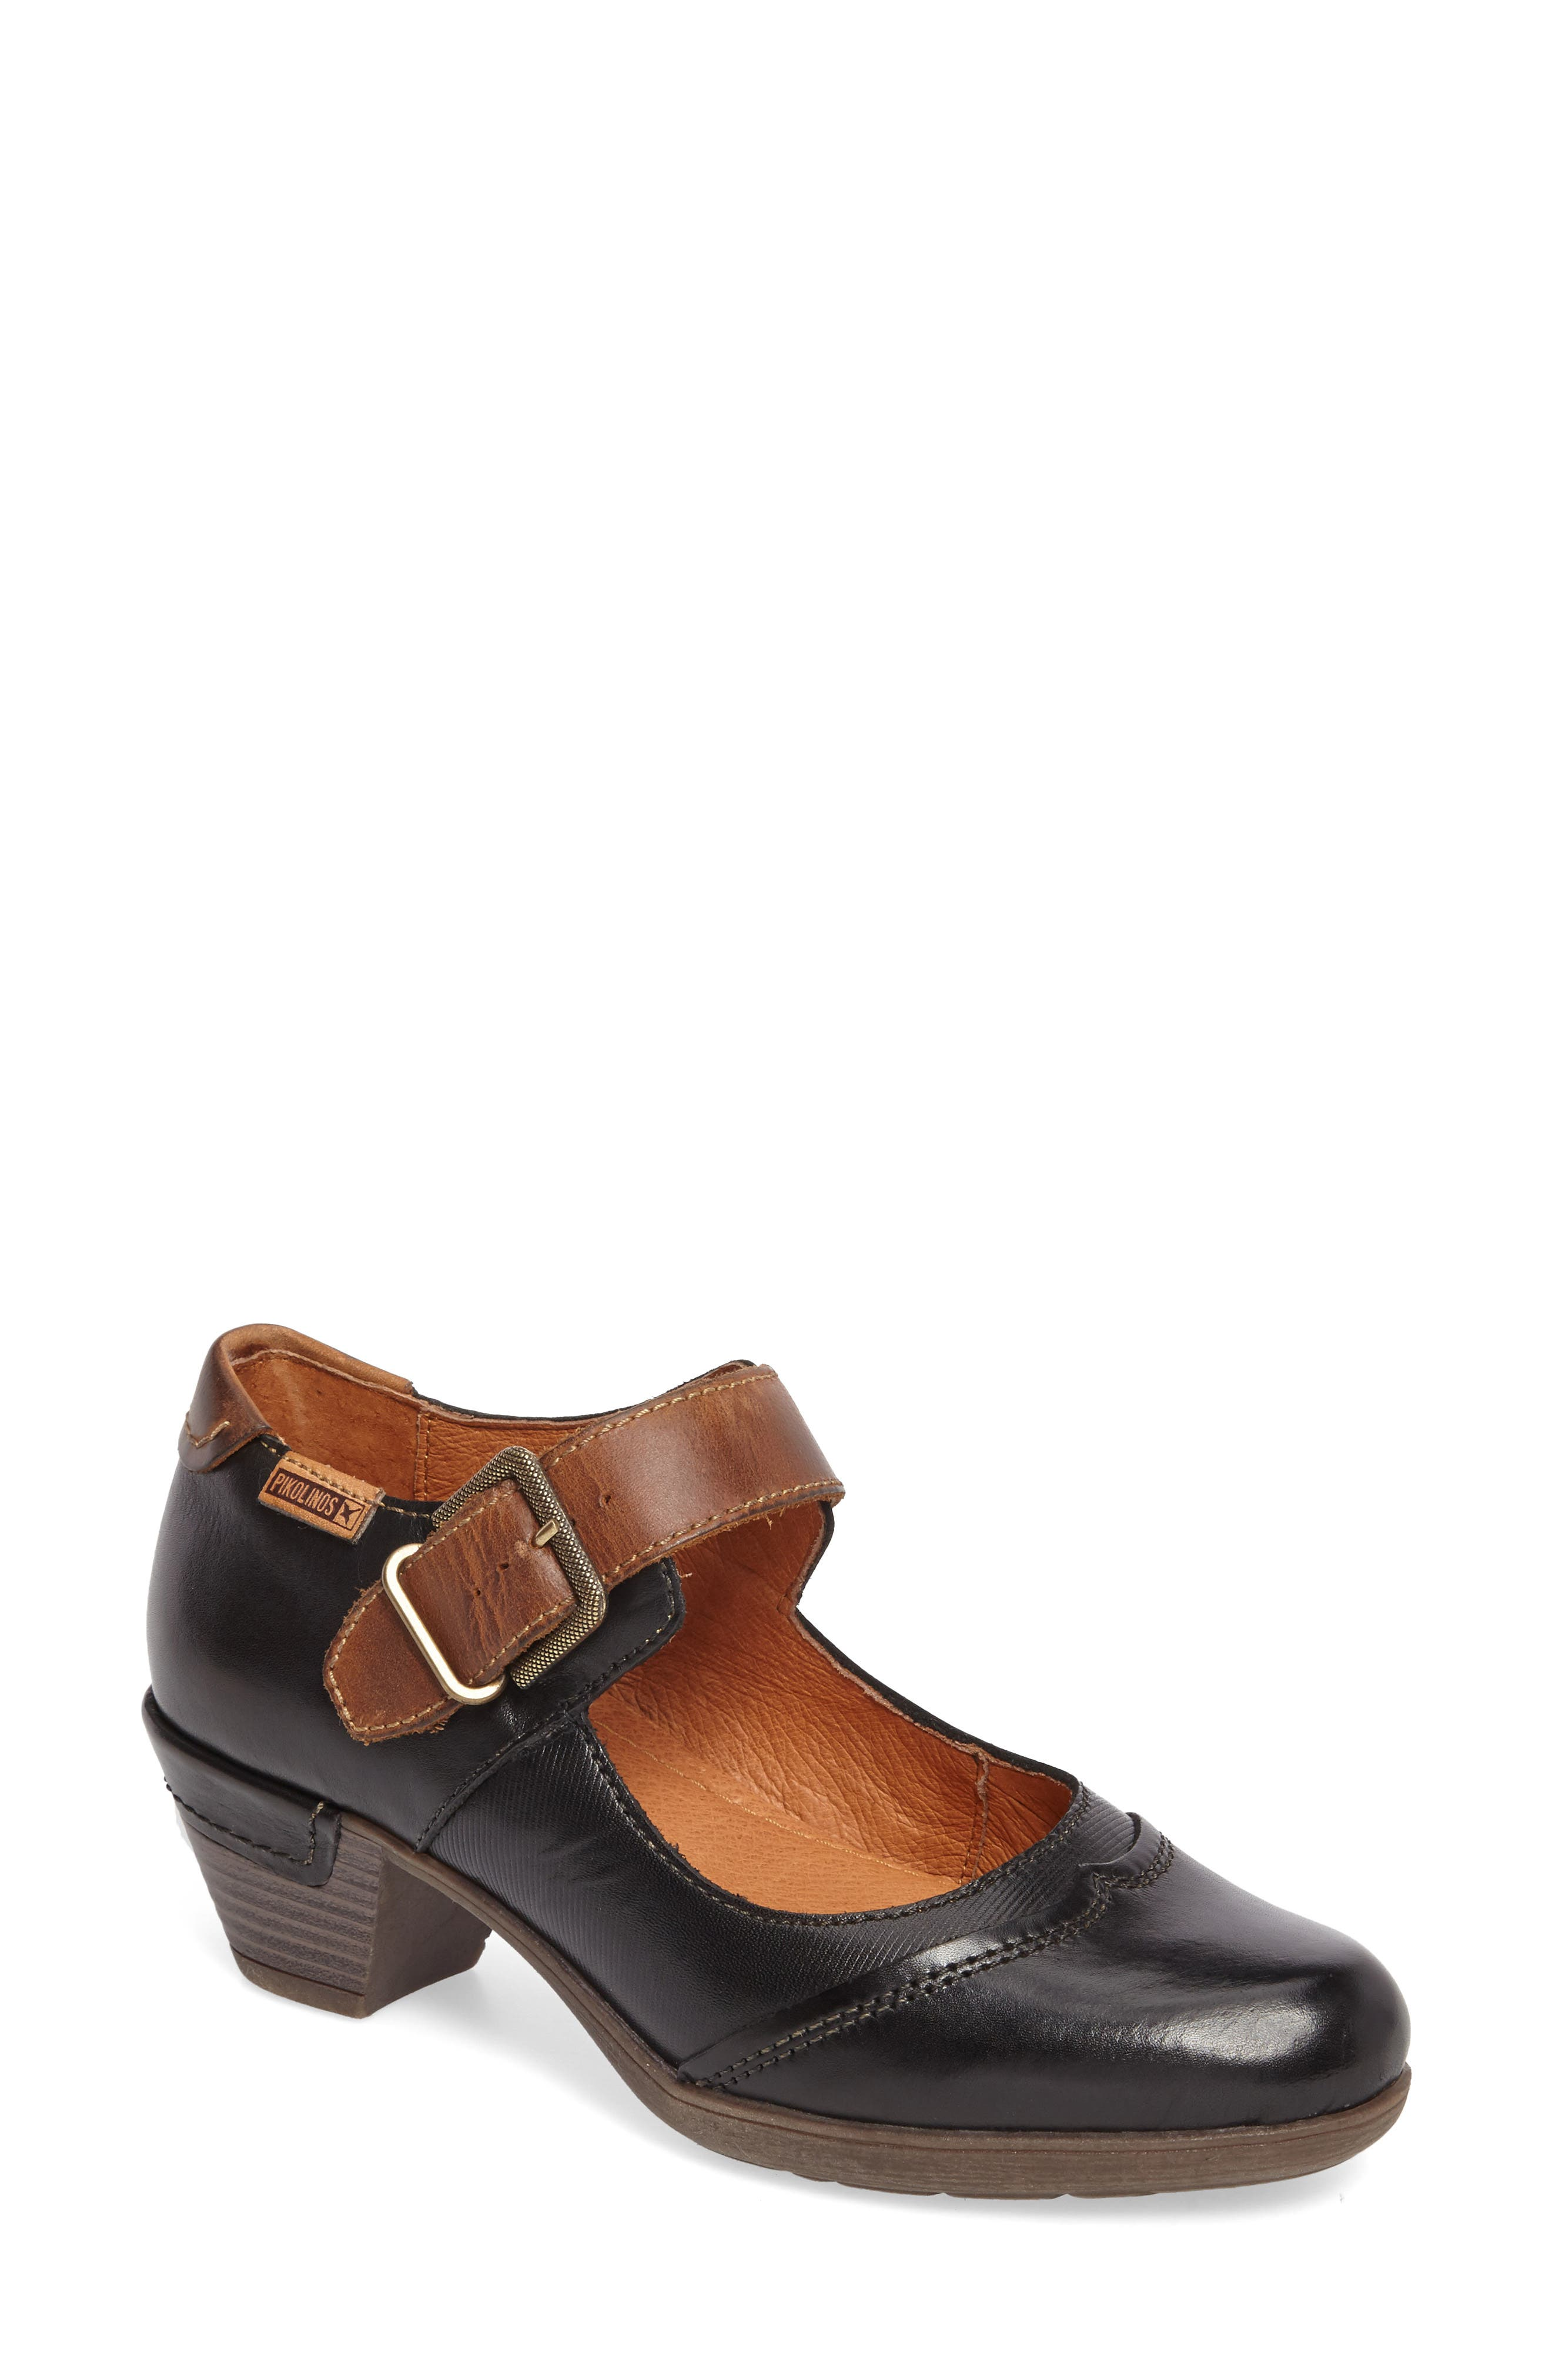 Rotterdam Water Resistant Mary Jane Pump,                             Main thumbnail 1, color,                             Black Leather